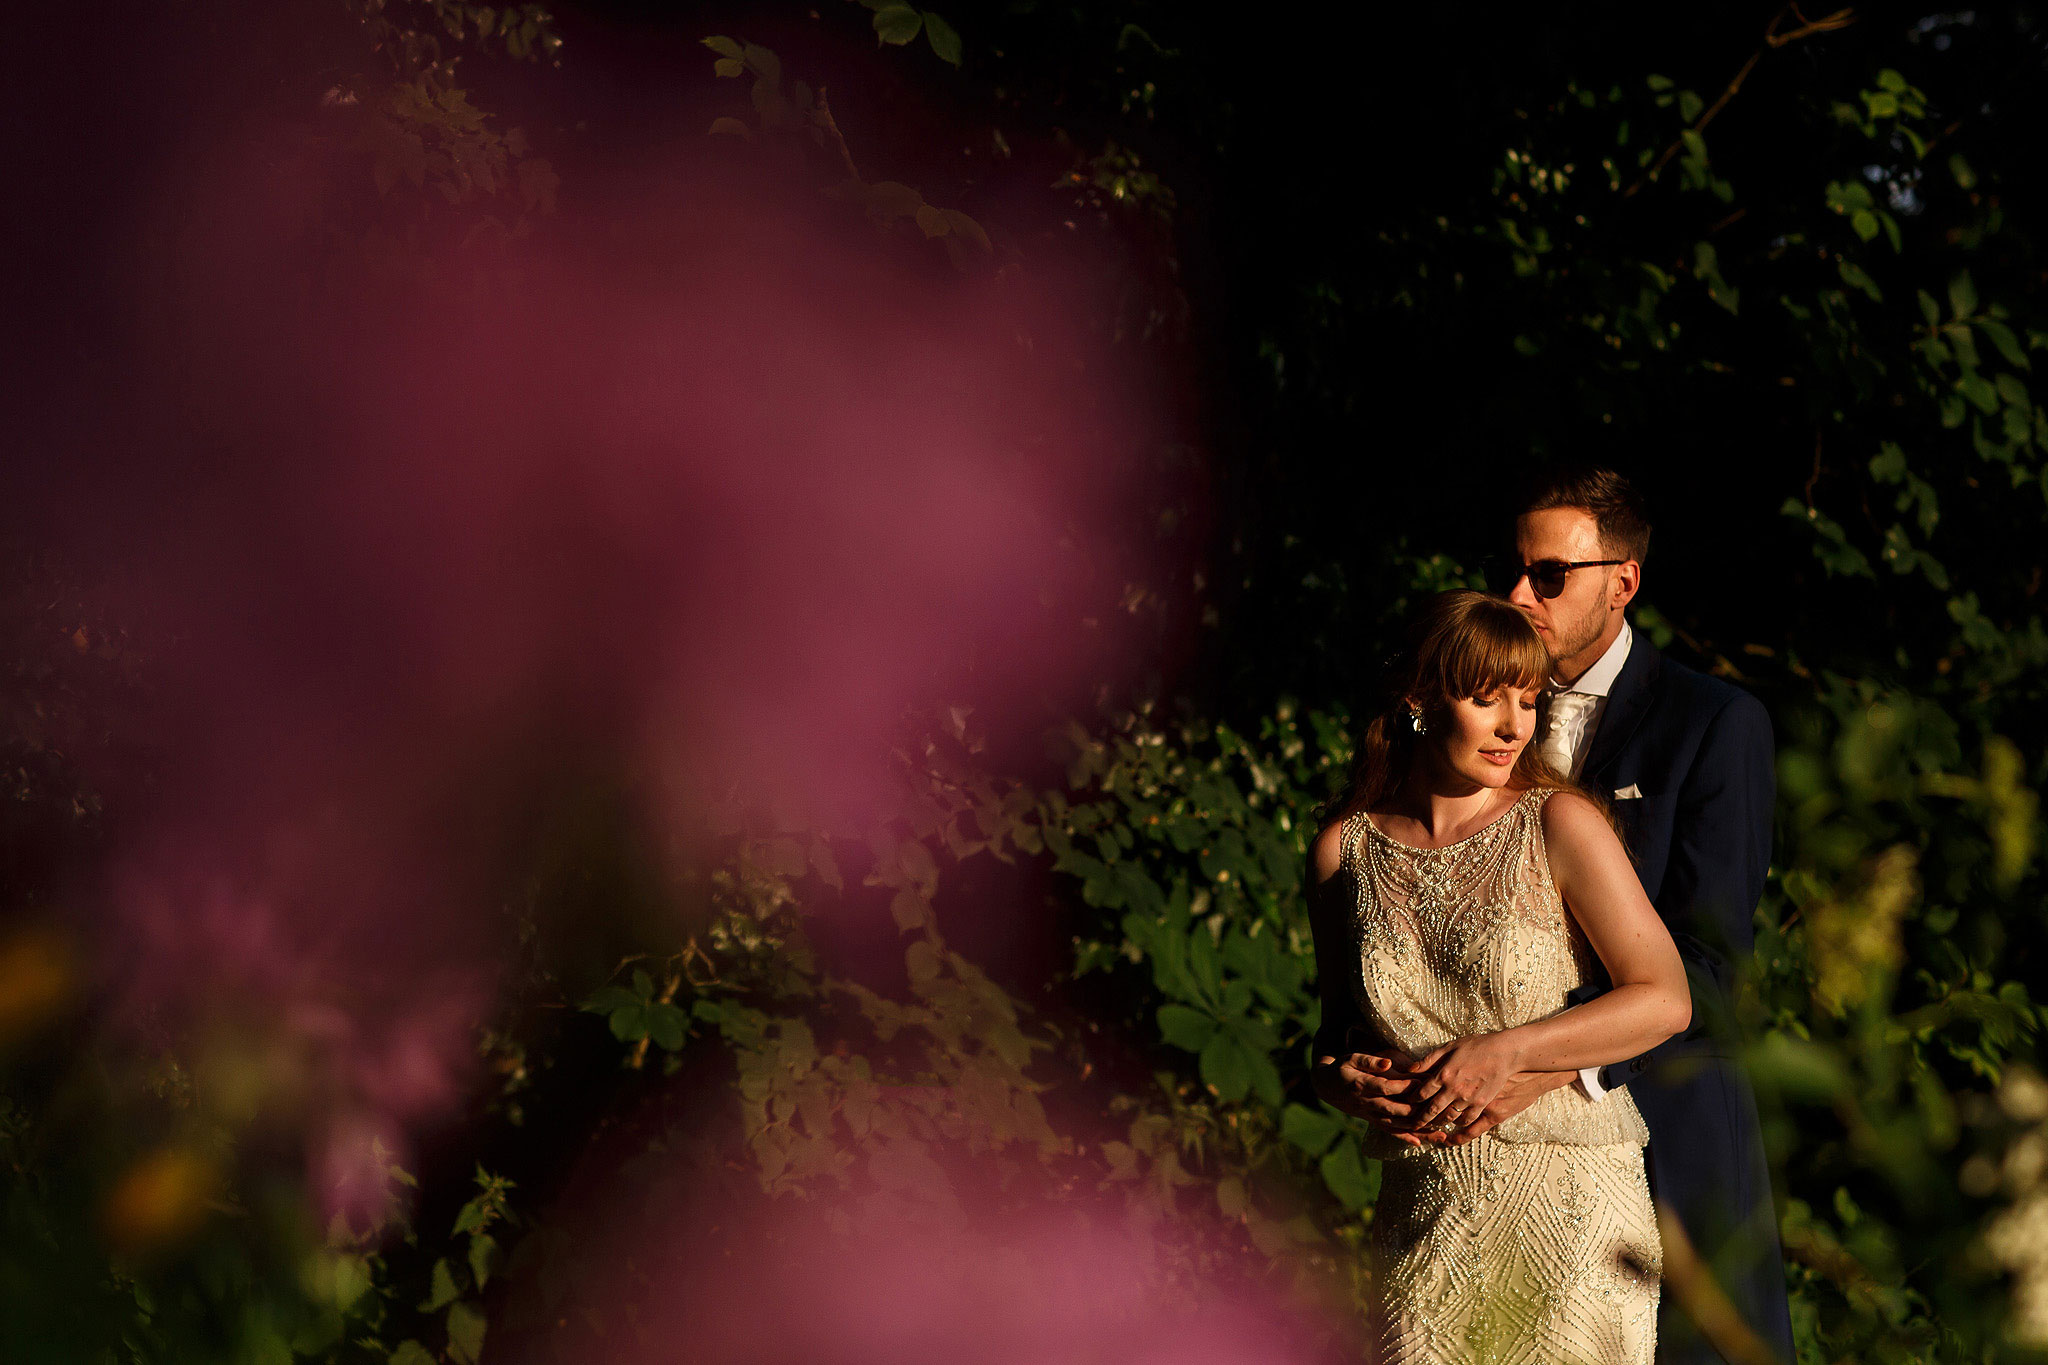 Sexy wedding day portrait of bride and groom in beautiful light in the gardens during wedding day portraits - The Villa at Wrea Green Wedding Photography - Toni Darcy Photography